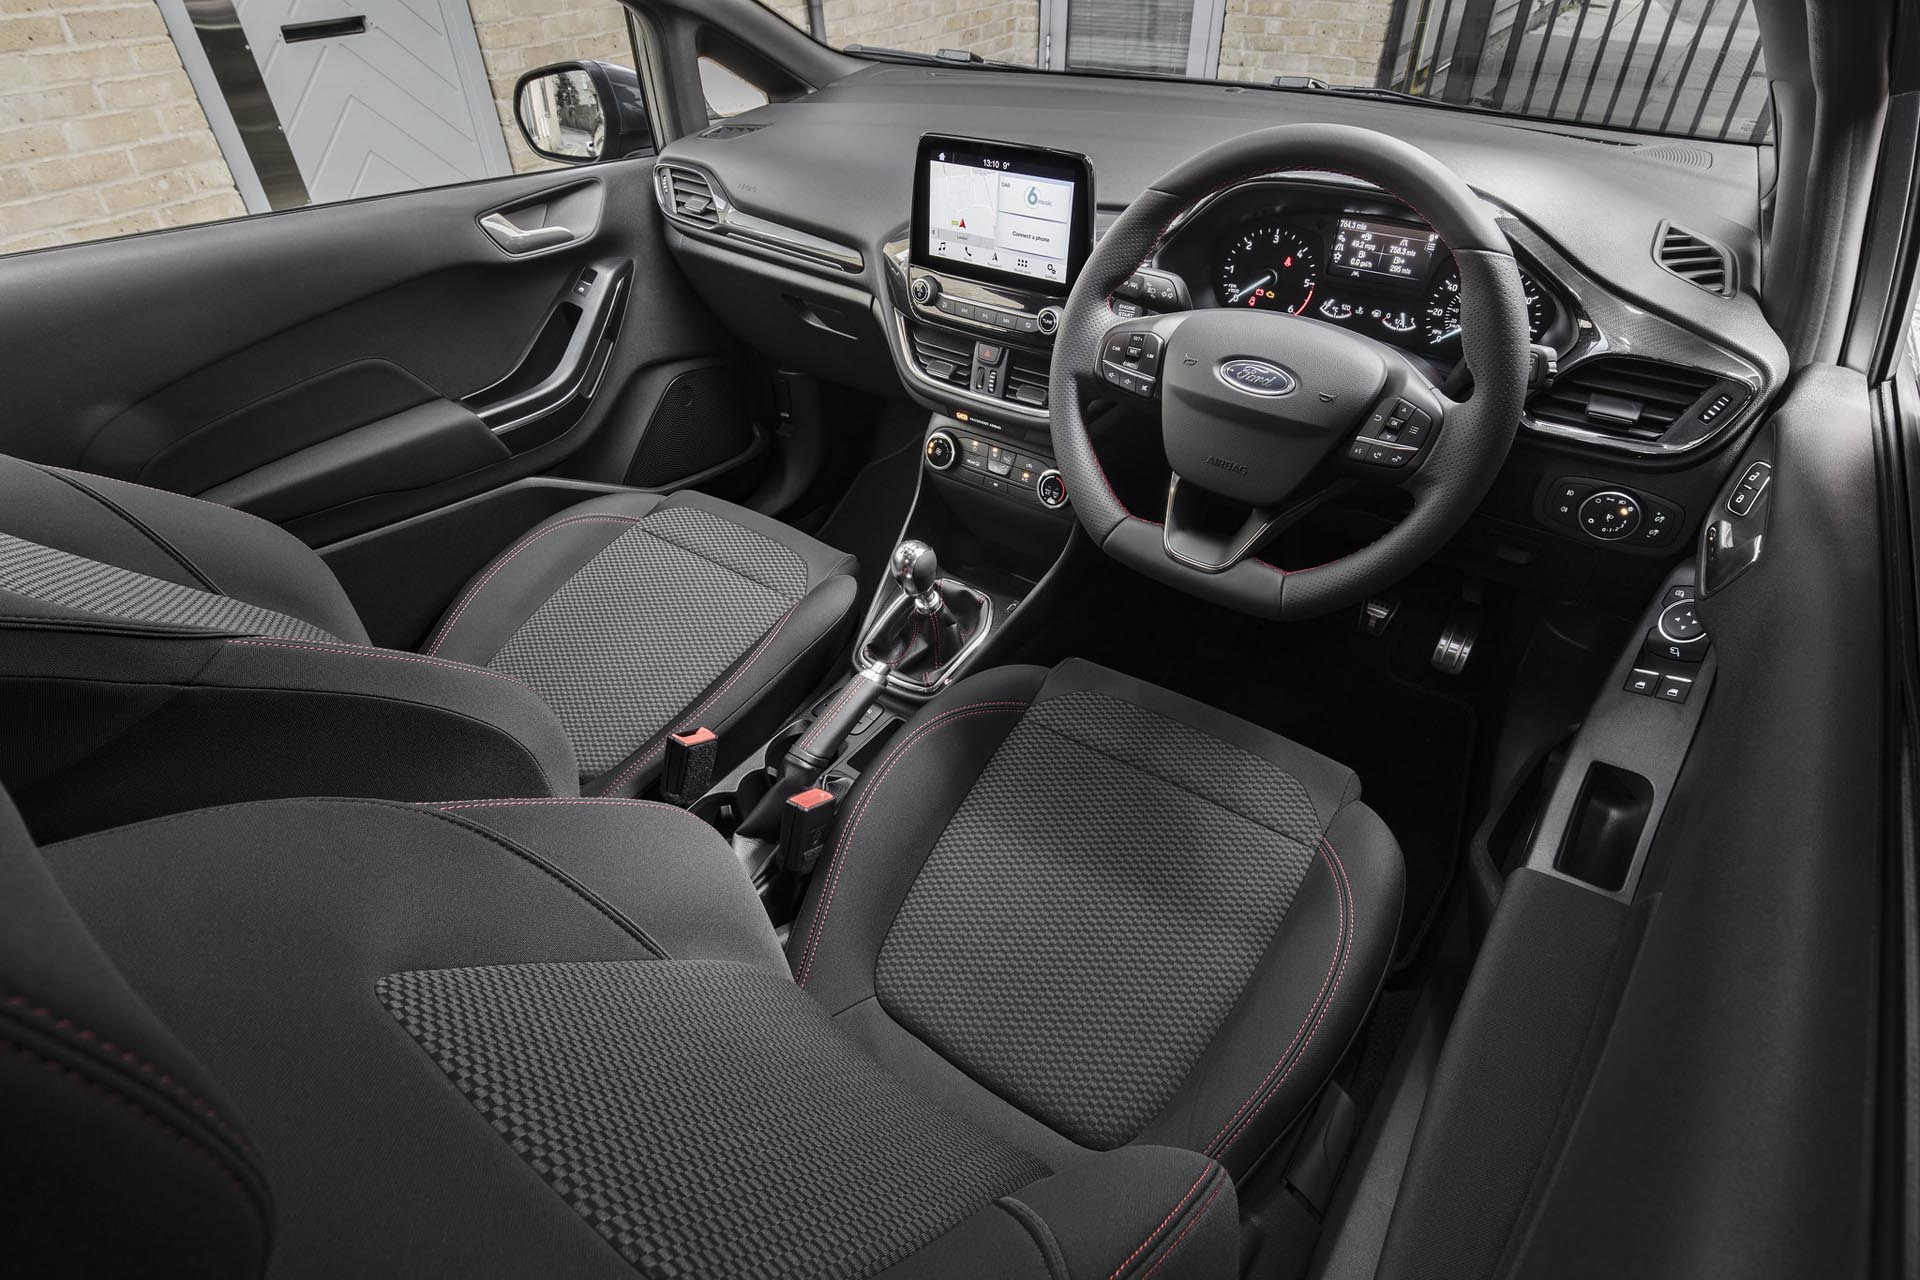 The Fiesta Van EcoBoost Hybrids interior is well suited to modern commercial use